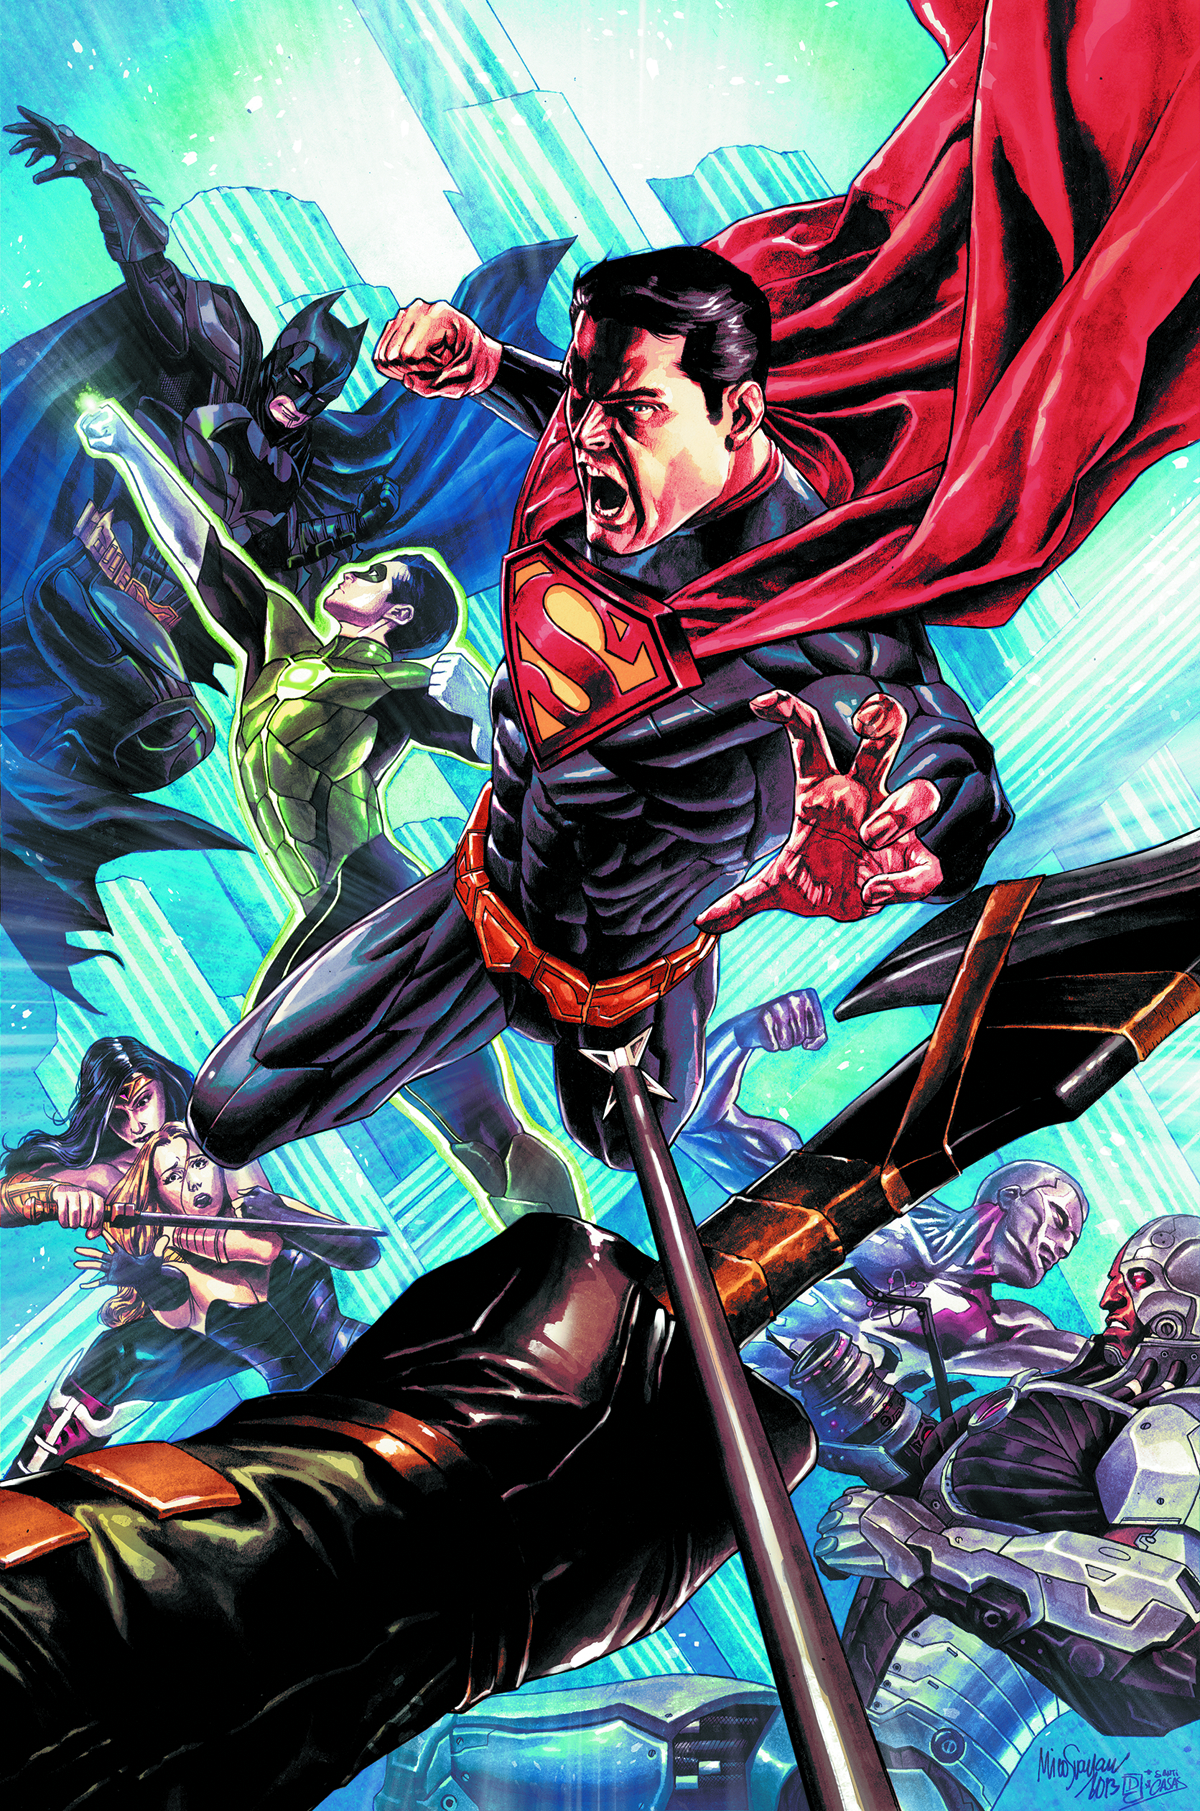 INJUSTICE GODS AMONG US #11